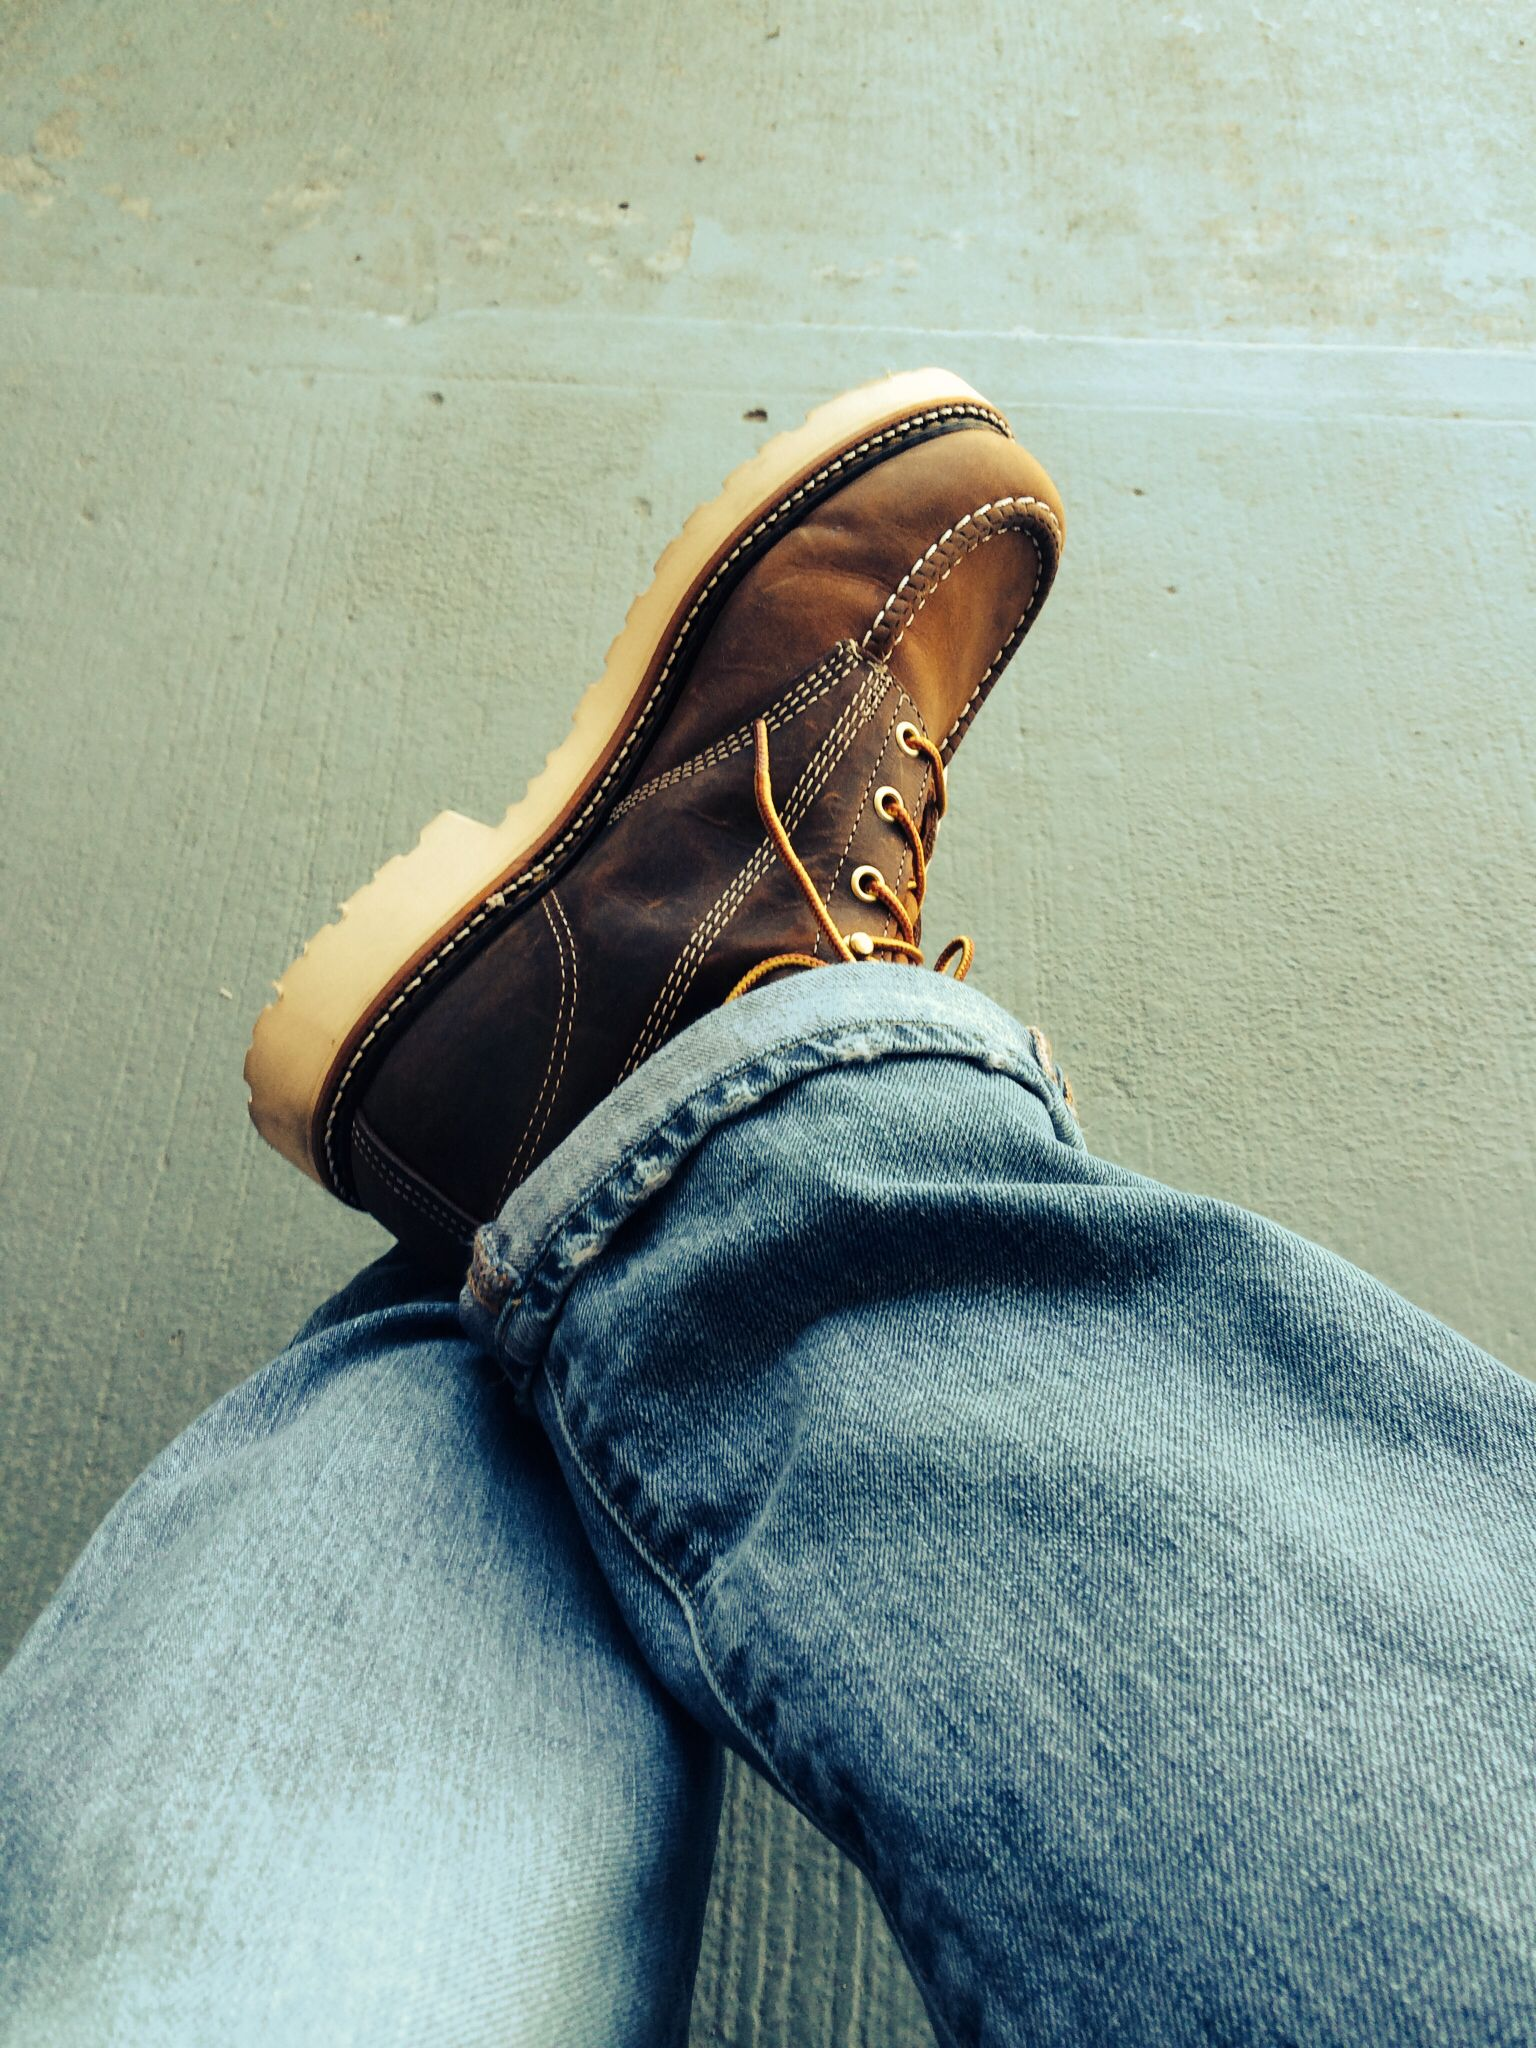 22b884ca54d Thorogood boots and jeans | Hipletic | Good work boots, Mens short ...